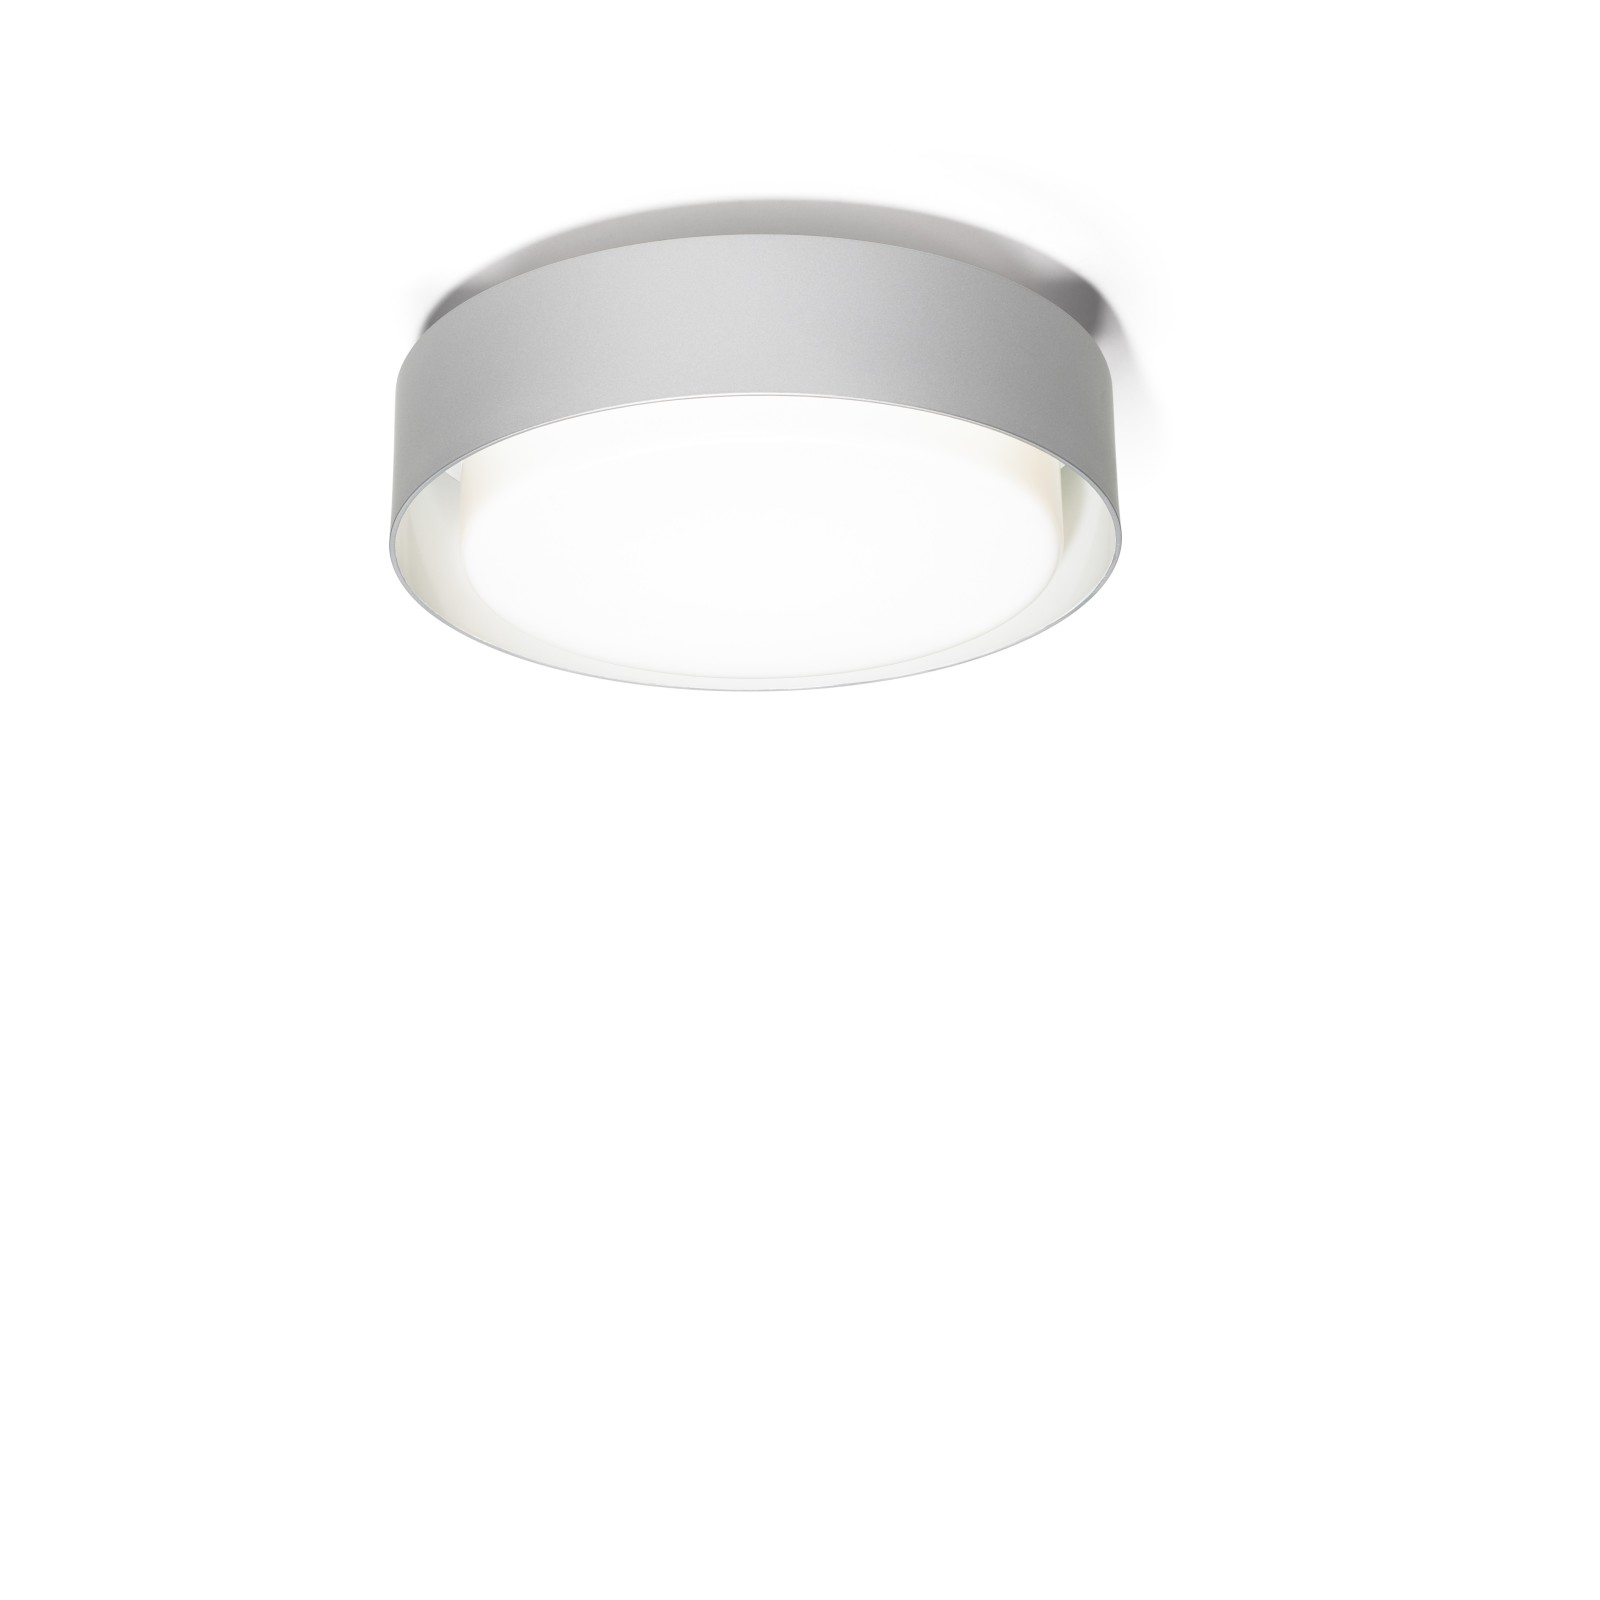 Plaff-on! Ceiling Light - LED Marset - Silver Grey, 33cm, Triac